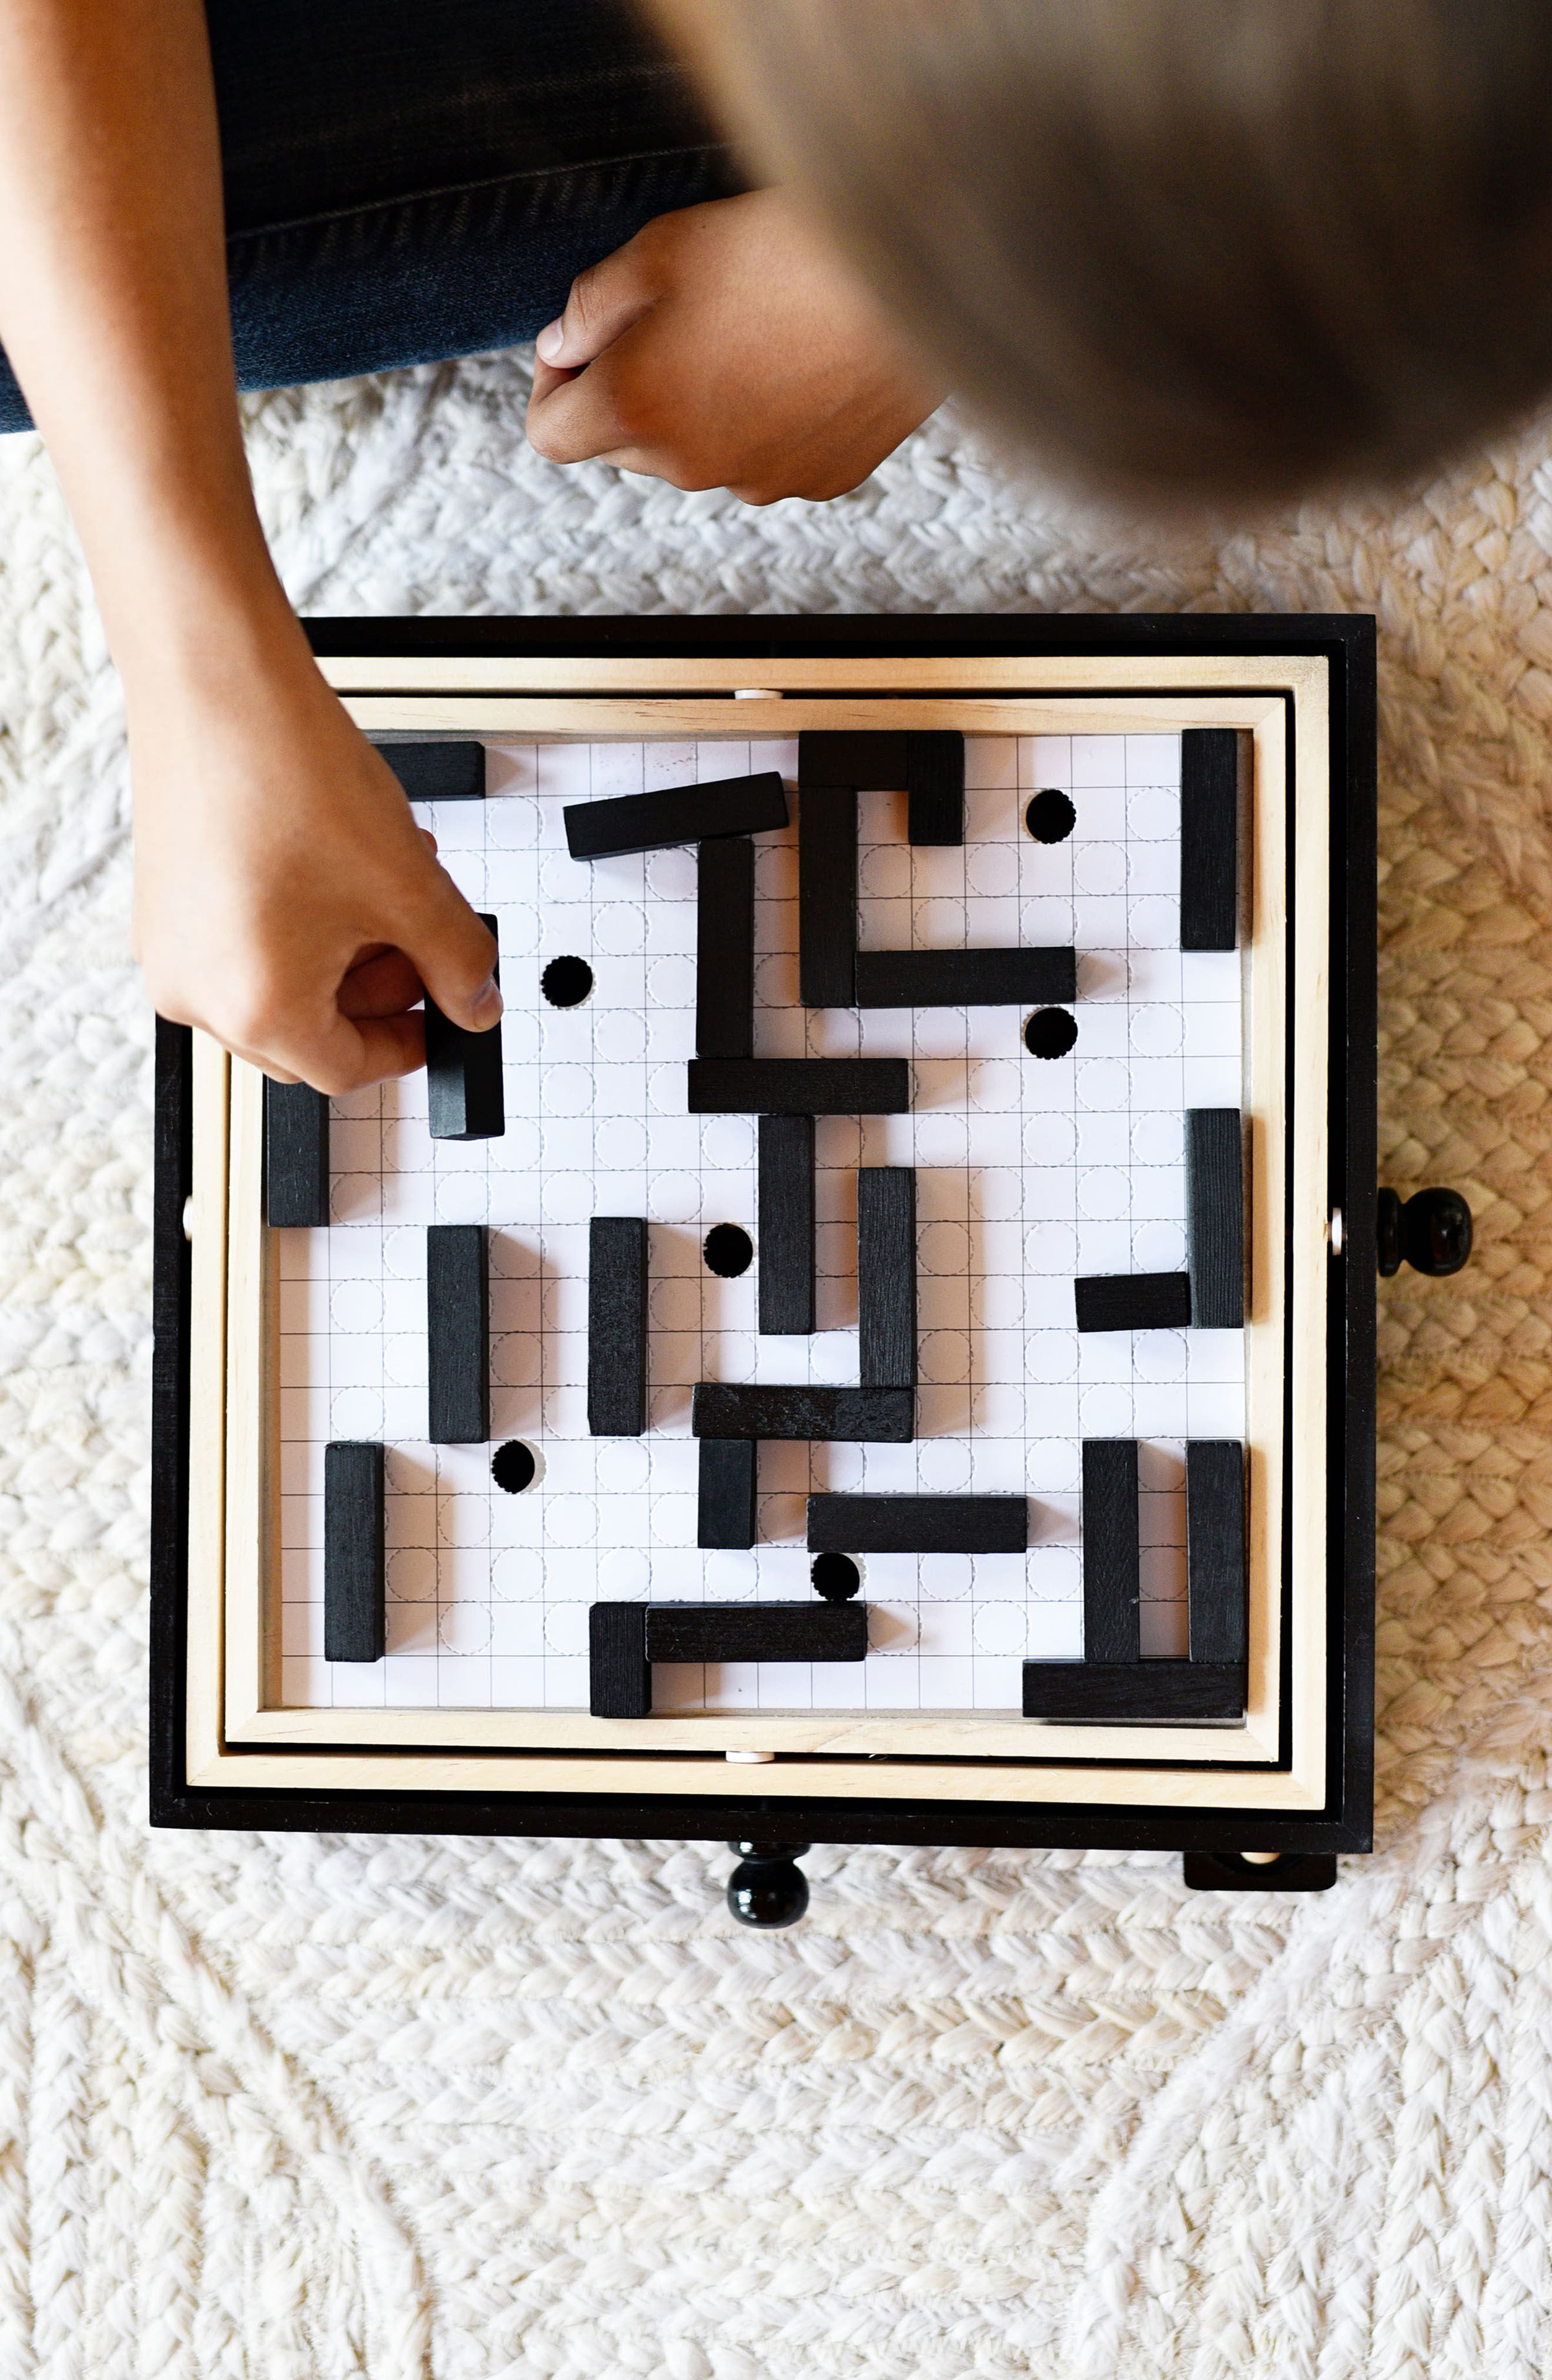 Design Your Own Marble Maze,                             Alternate thumbnail 7, color,                             001